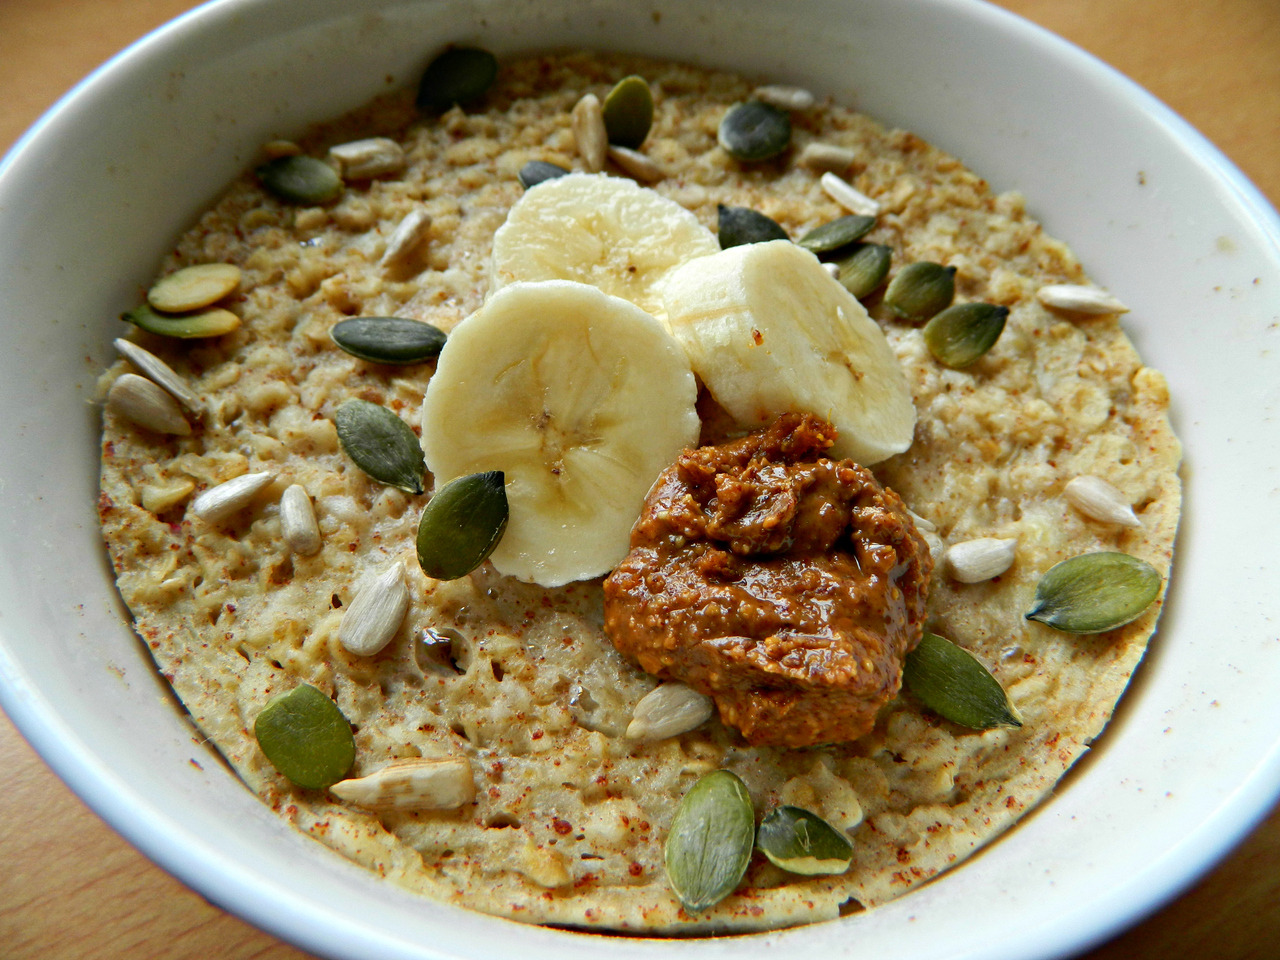 5 Minute 'Baked' Banana Oatmeal! I really fancied some baked oatmeal this morning - but didn't want to wait 30 minutes for it to cook, so made this and zapped it in the microwave instead! :) What you'll need - 1/2 cup oats; 2/3 cup almond milk; 1 egg (or 1 egg white… but cooking time might be longer); 1 banana; A dash of vanilla and cinnamon; A dash of agave or maple syrup if your banana isn't ripe. 1. Mash your banana in to a bowl, then add the egg, agave, vanilla and cinnamon, stirring until combined. It'll look pretty goopy, but don't worry! 2. Add the oats and almond milk, stirring again until combined. Pop in the microwave for 2-3 minutes, cooking on high. Top with any leftover banana slices, almond butter and seeds to make it ~super delicious. :D Stats: 375 calories, 13g protein, 33% of your dietary fibre and 26% of your calcium. Nutritious, quick and filling. Awesome.